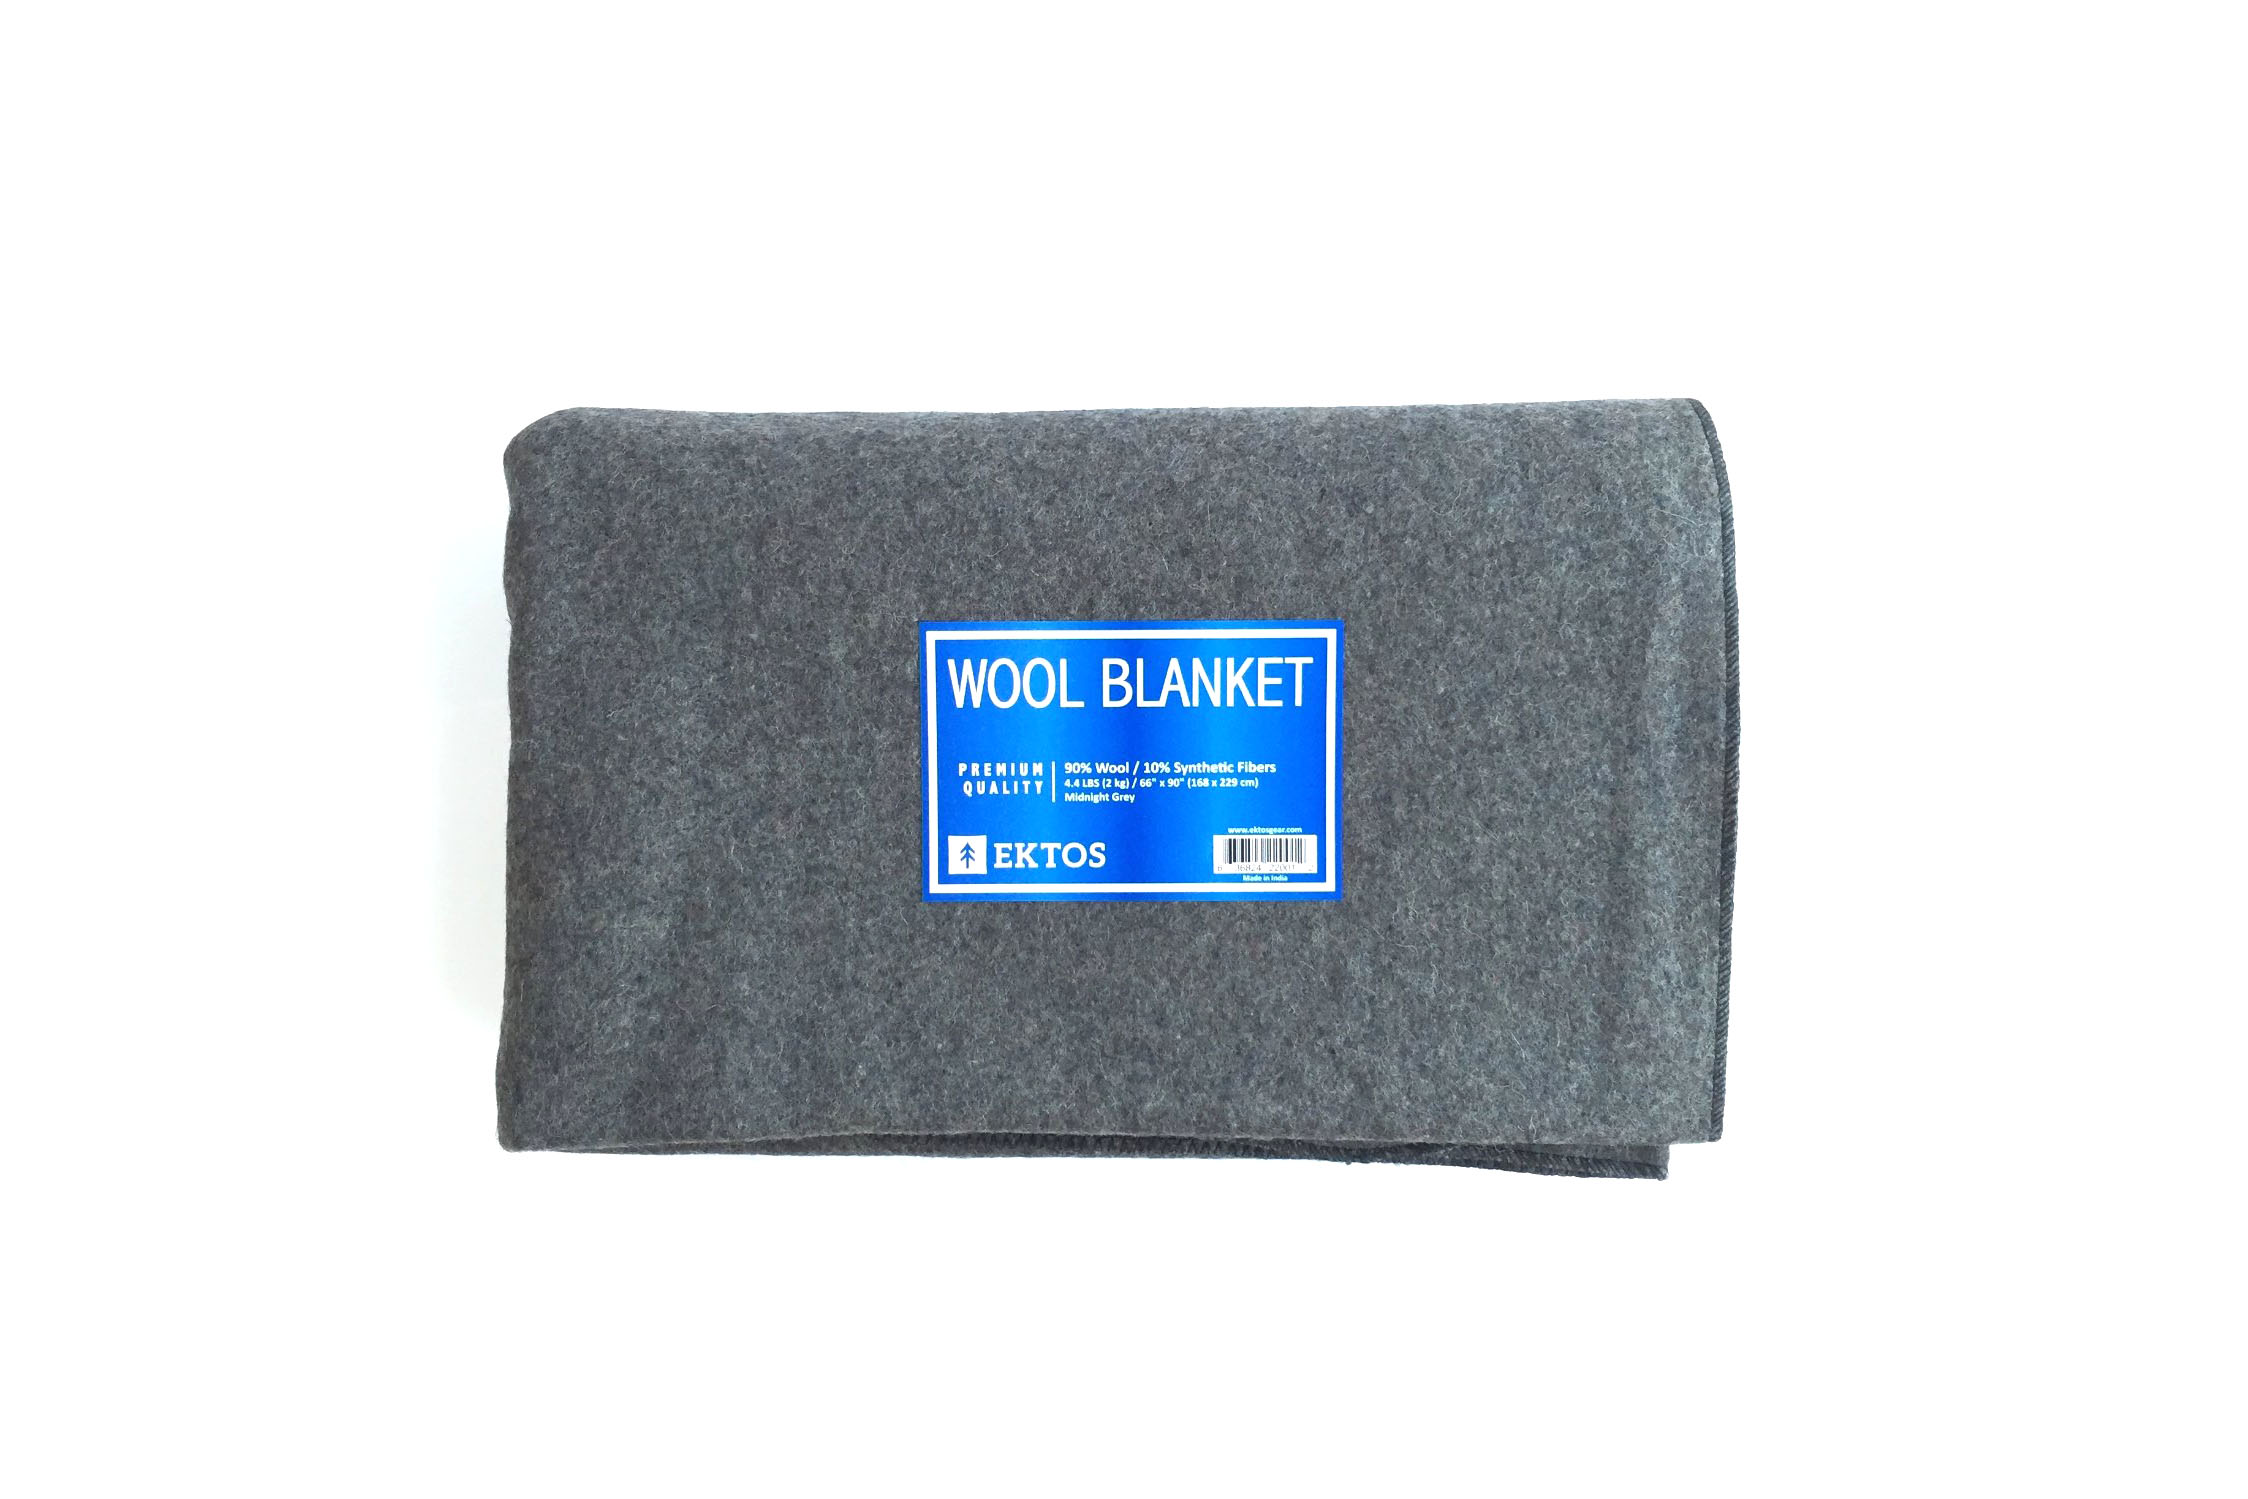 Heavy Wool Blanket - 4.5 stars - $48 (Prime)